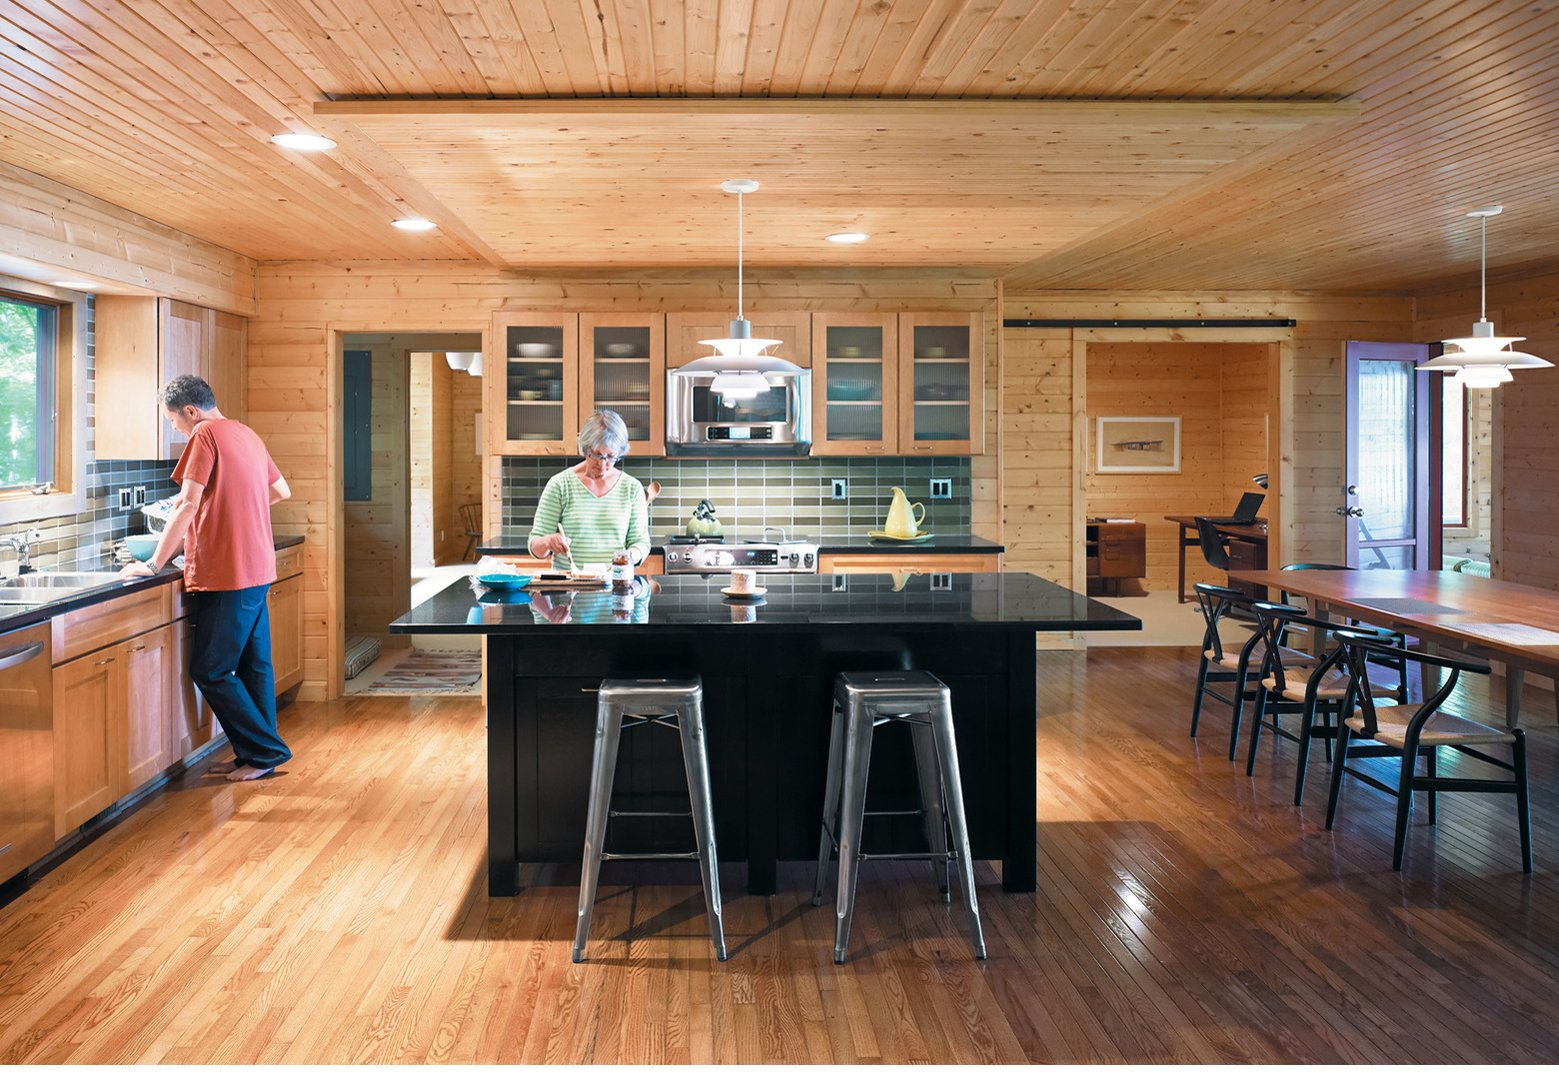 photo 1 of 1 in a ranch house kitchen renovation dwell